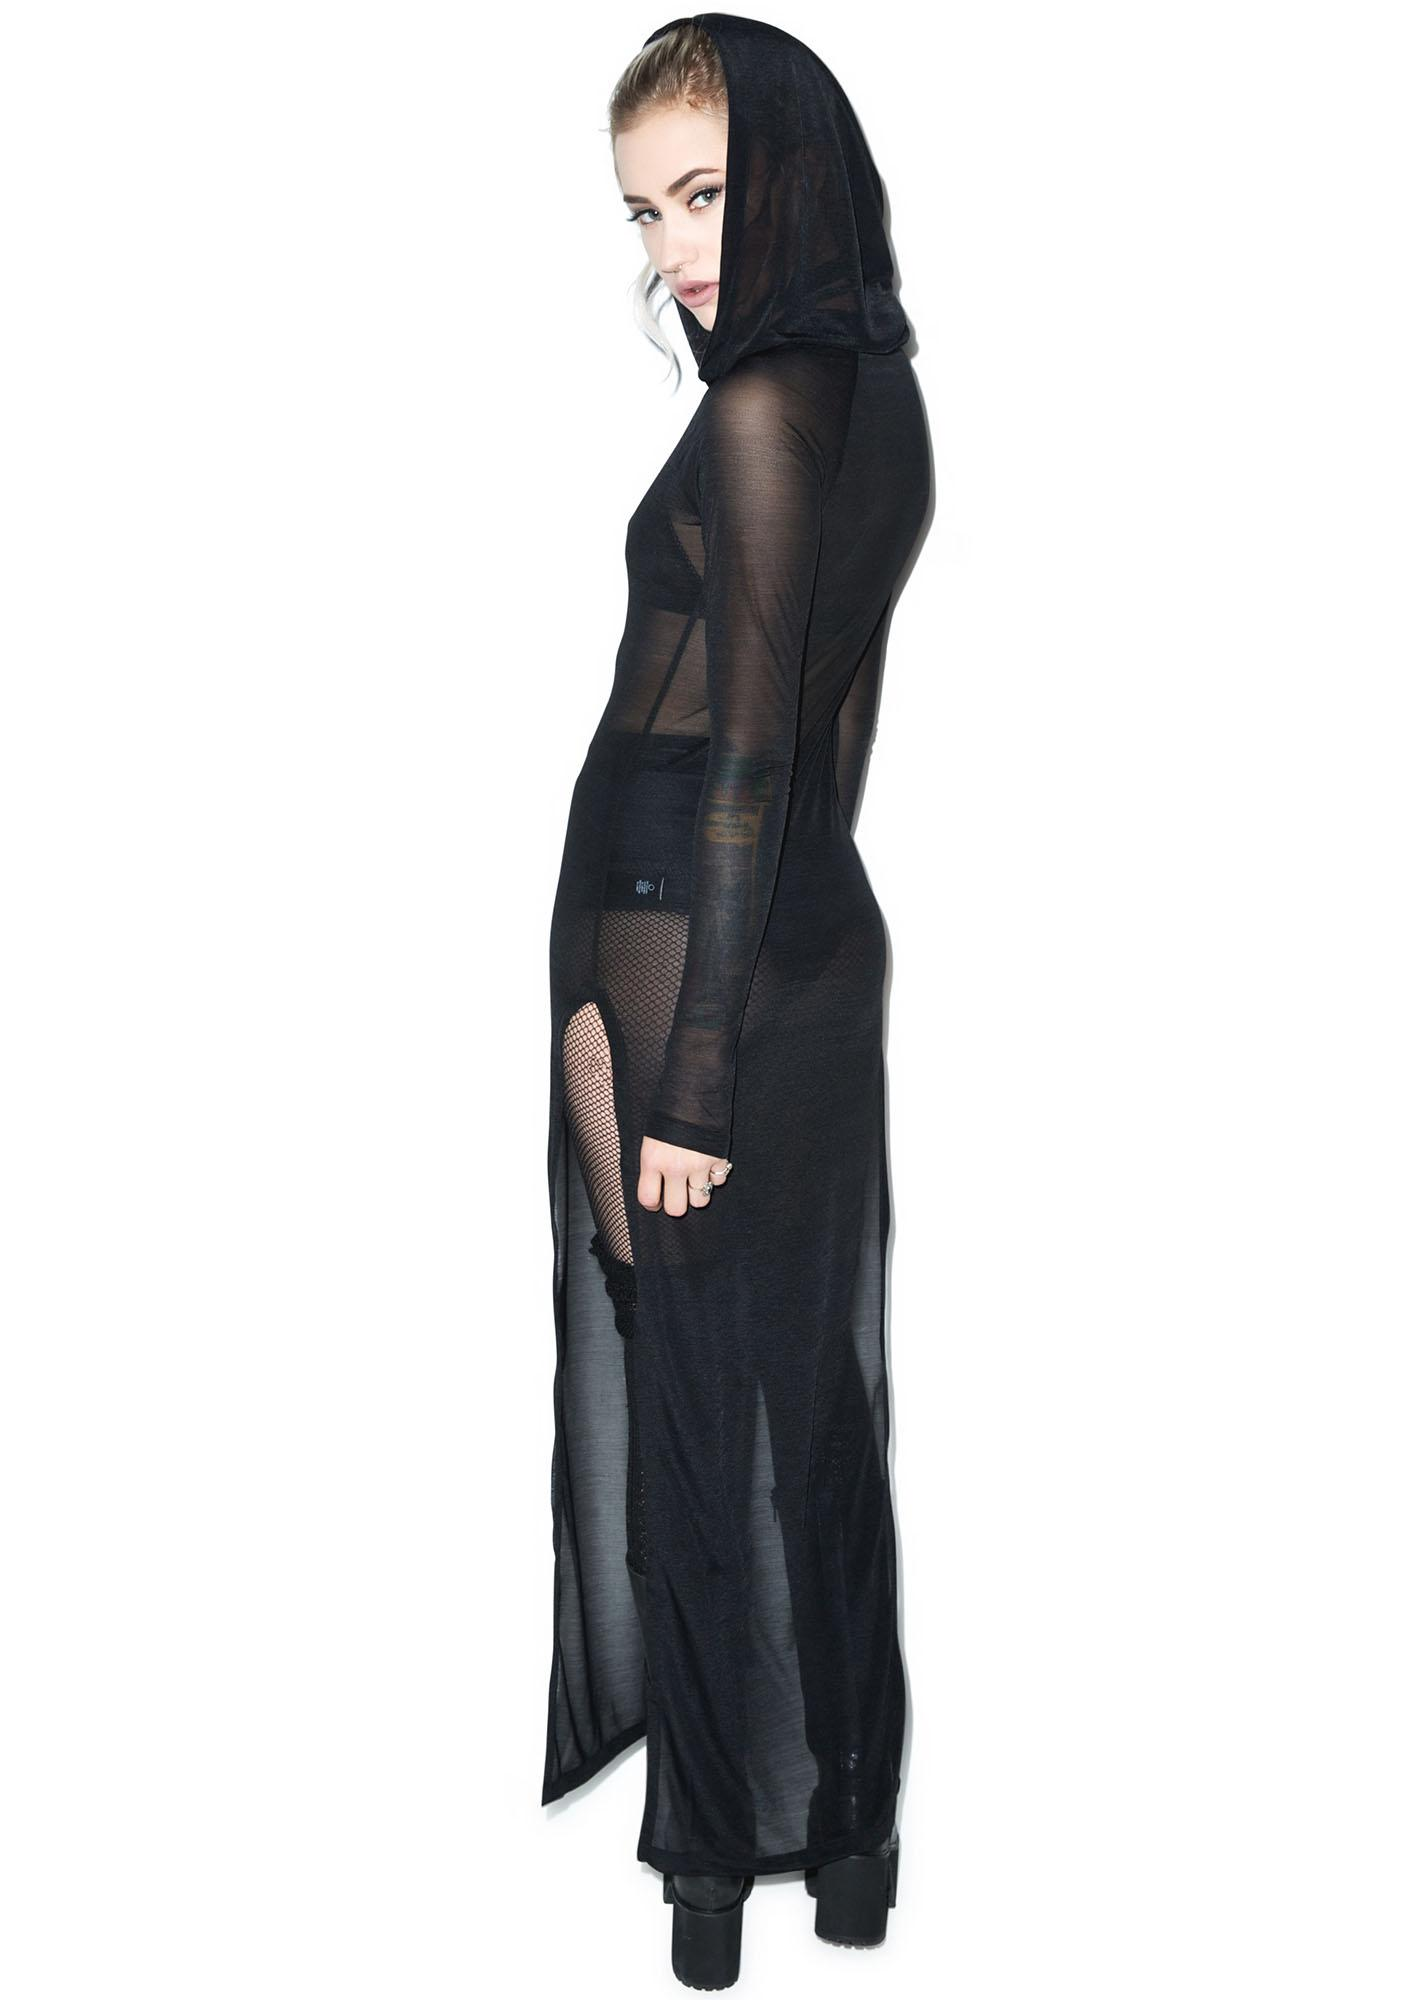 Widow Raven's Shroud Long Sleeve Hooded Gown